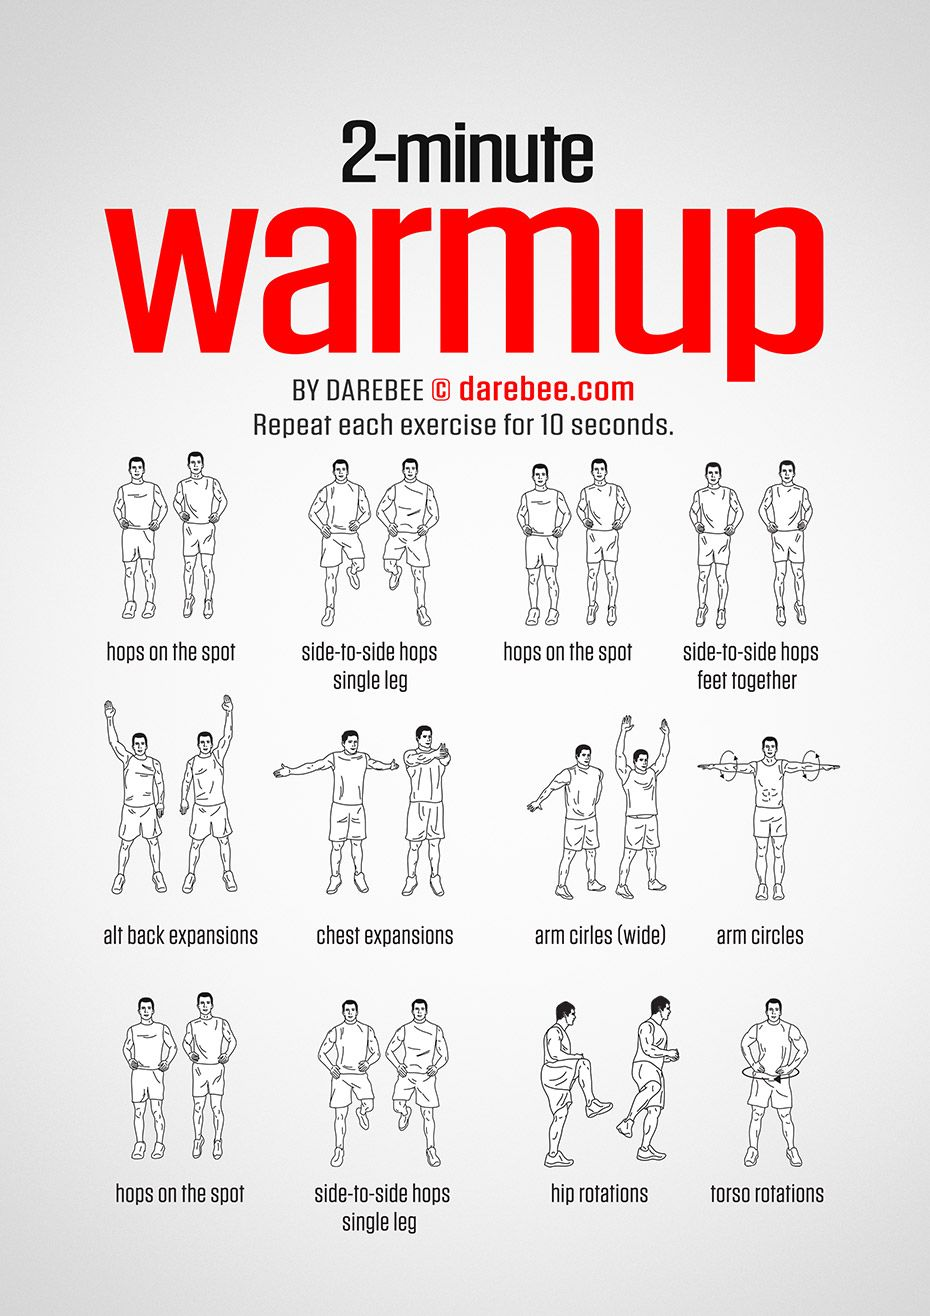 2 Minute Warmup Workout | Posted By: AdvancedWeightLossTips.com